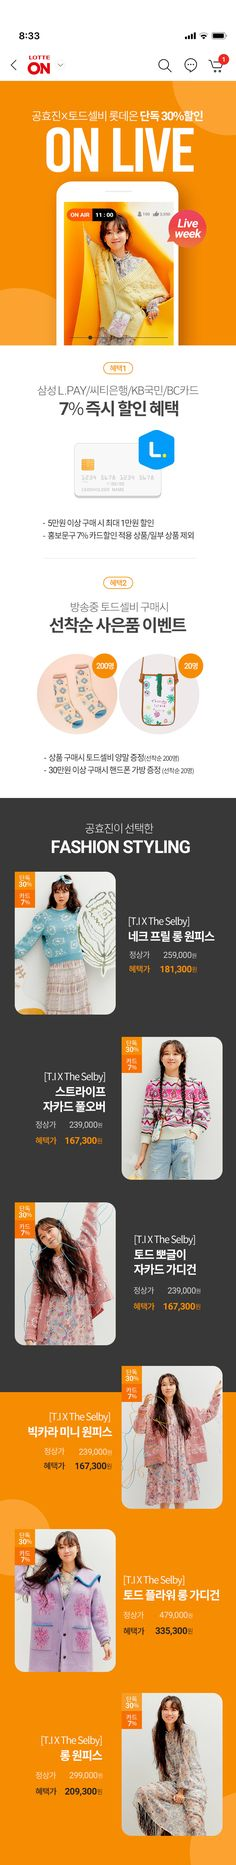 Make Design, Shopping, Style, Swag, Stylus, Outfits